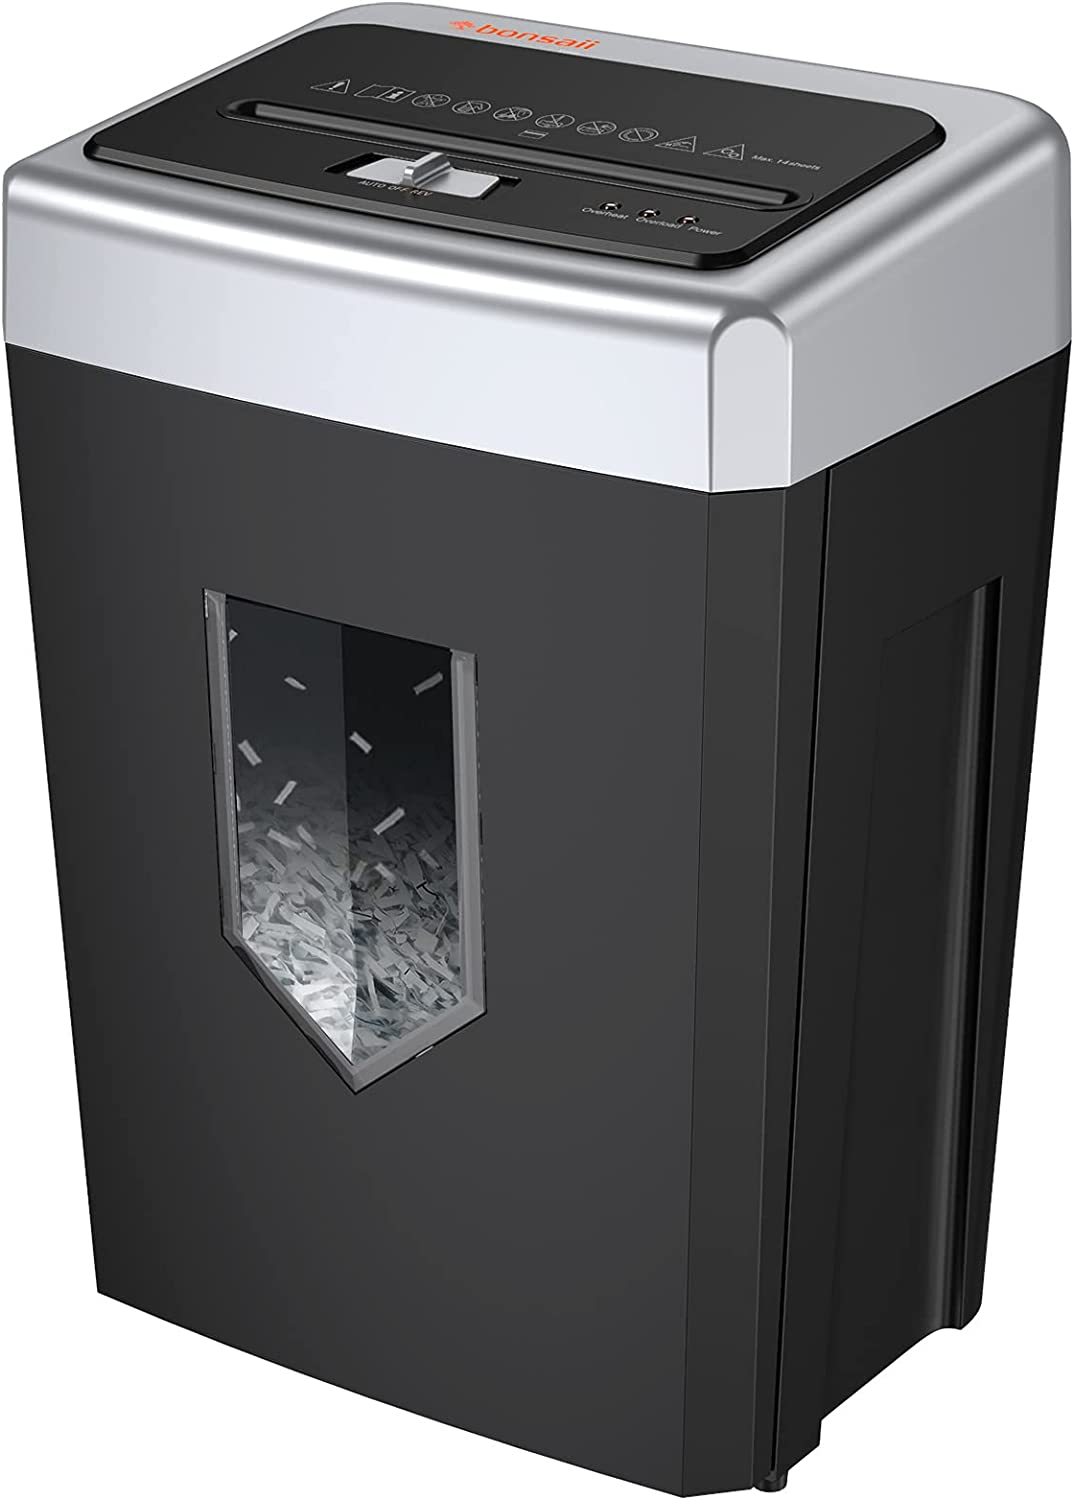 Paper Shredder for Home Office, Bonsaii 14-Sheet 30-Minute Cross-Cut Heavy Duty Shredder for Home Office Use with 4.8 Gallons Pullout Basket & 4 Casters, Quiet Anti-Jam Credit Card/Staples Shredder